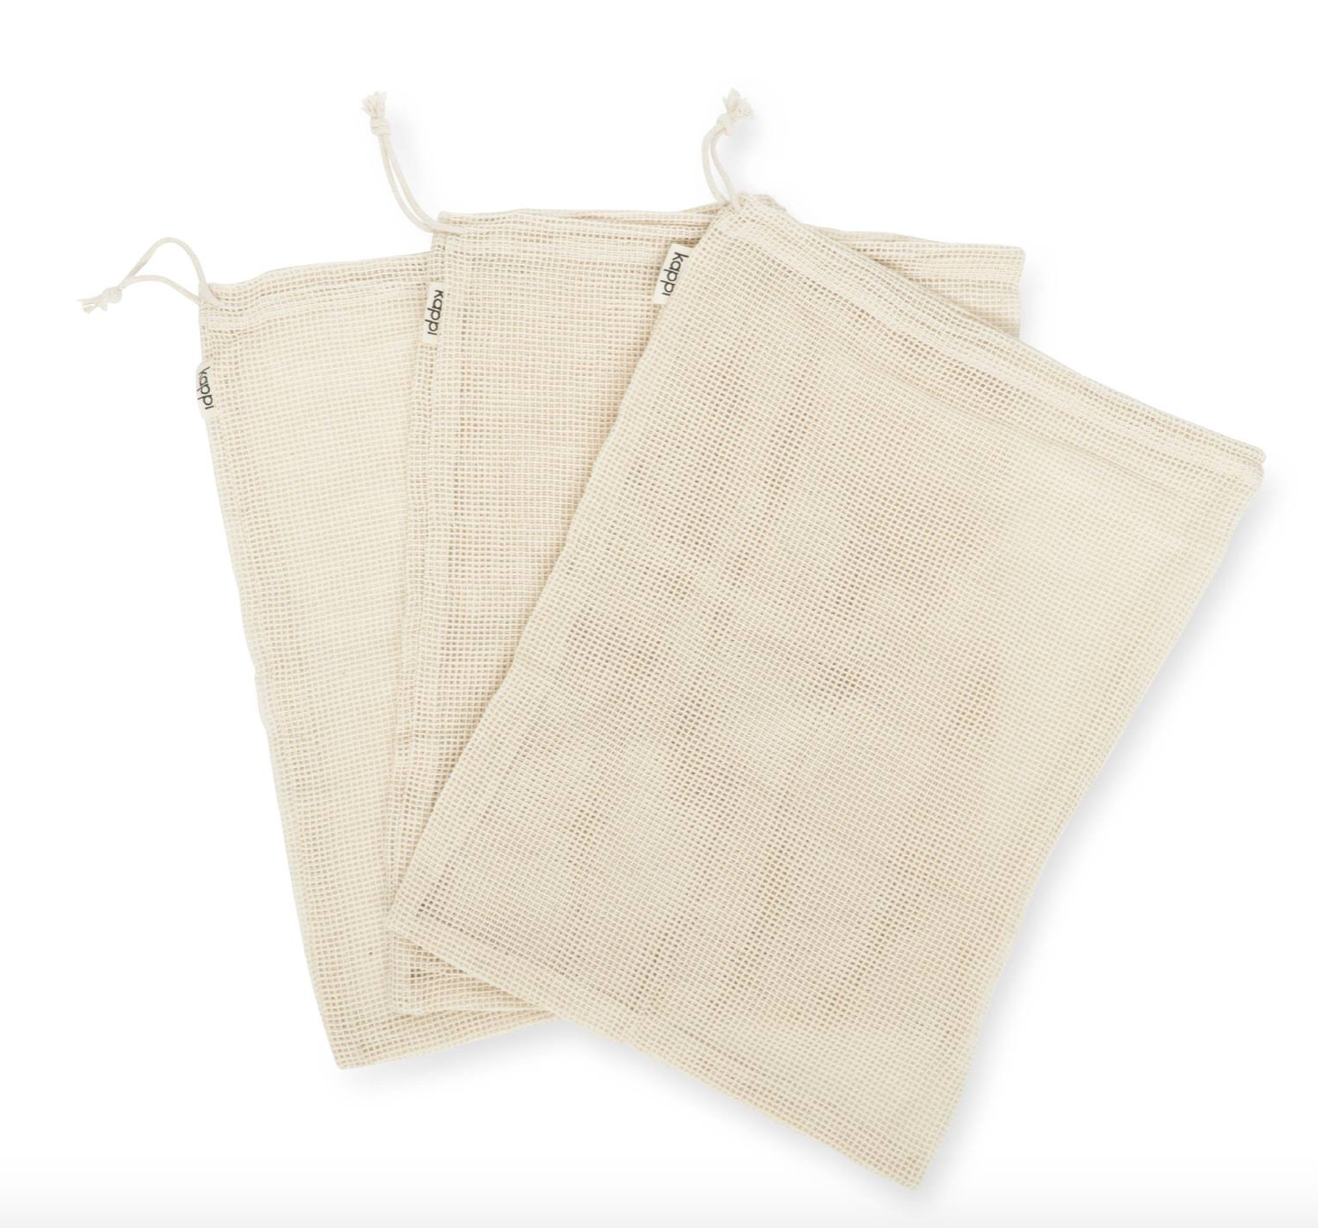 Reusable Mesh Produce Bags By Kappi Life In 2020 Produce Bags Reusable Produce Bags Reusable